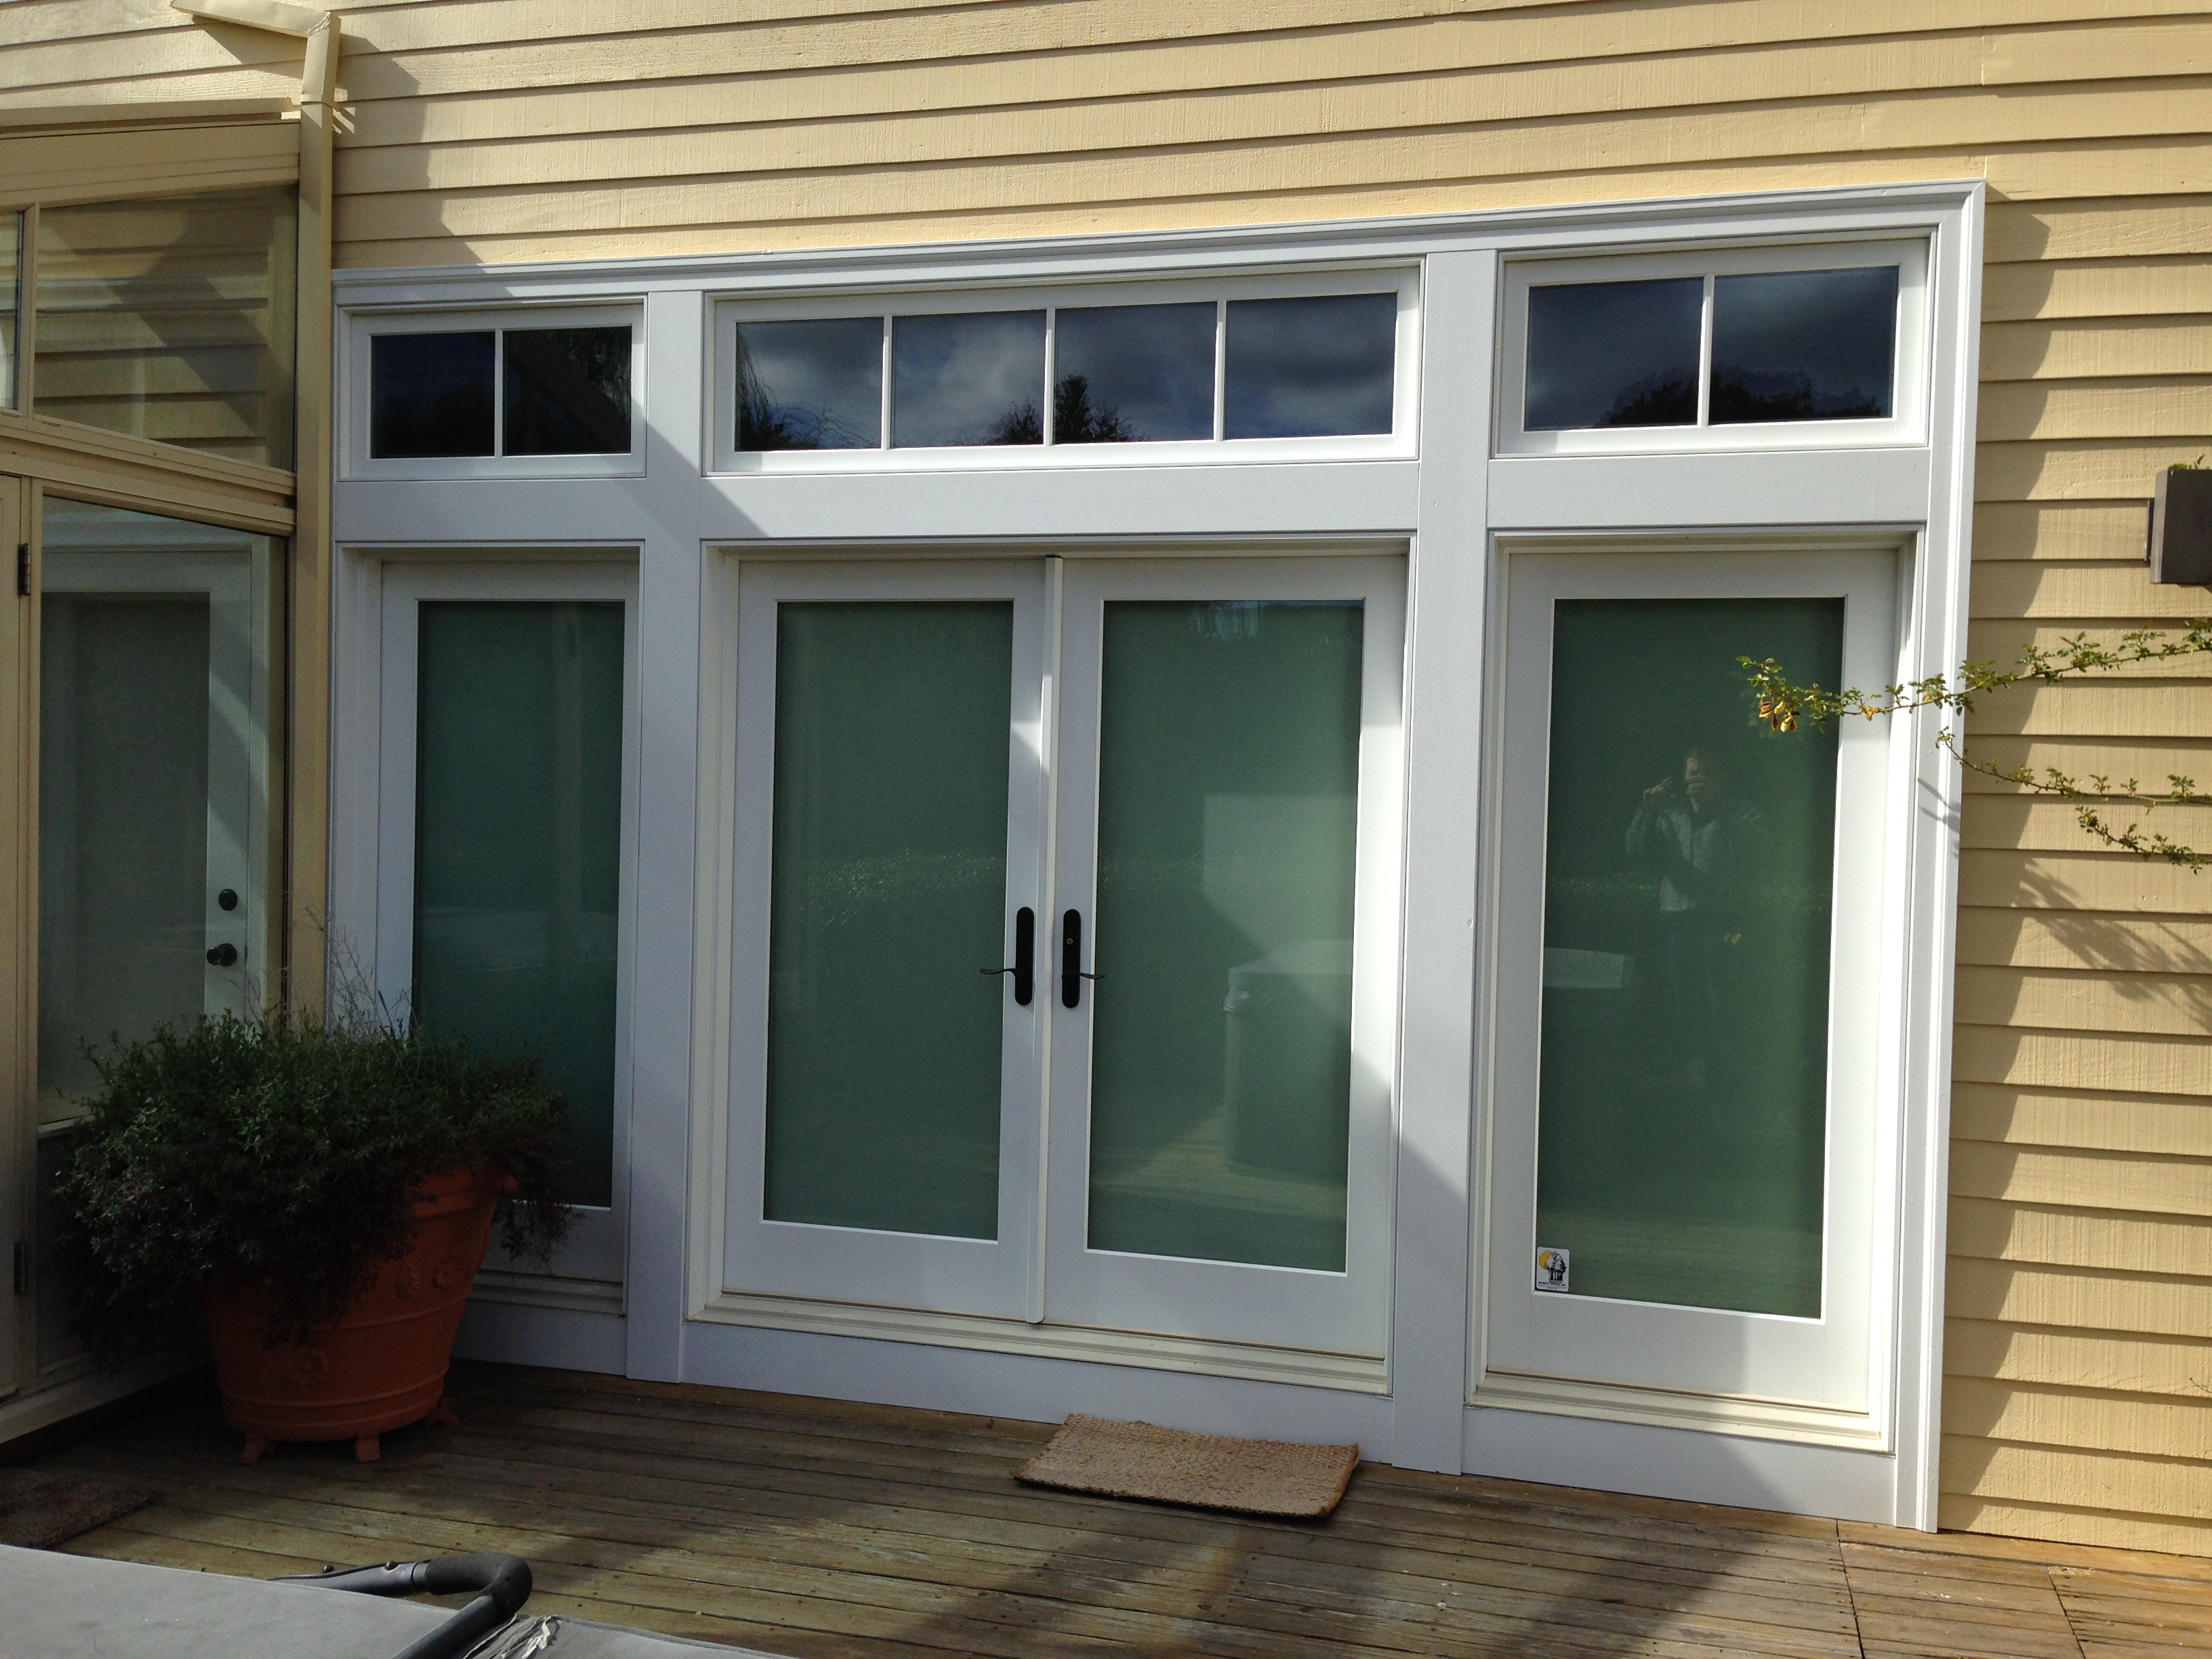 Marvin clad inswing door ot glass for Marvin transom windows